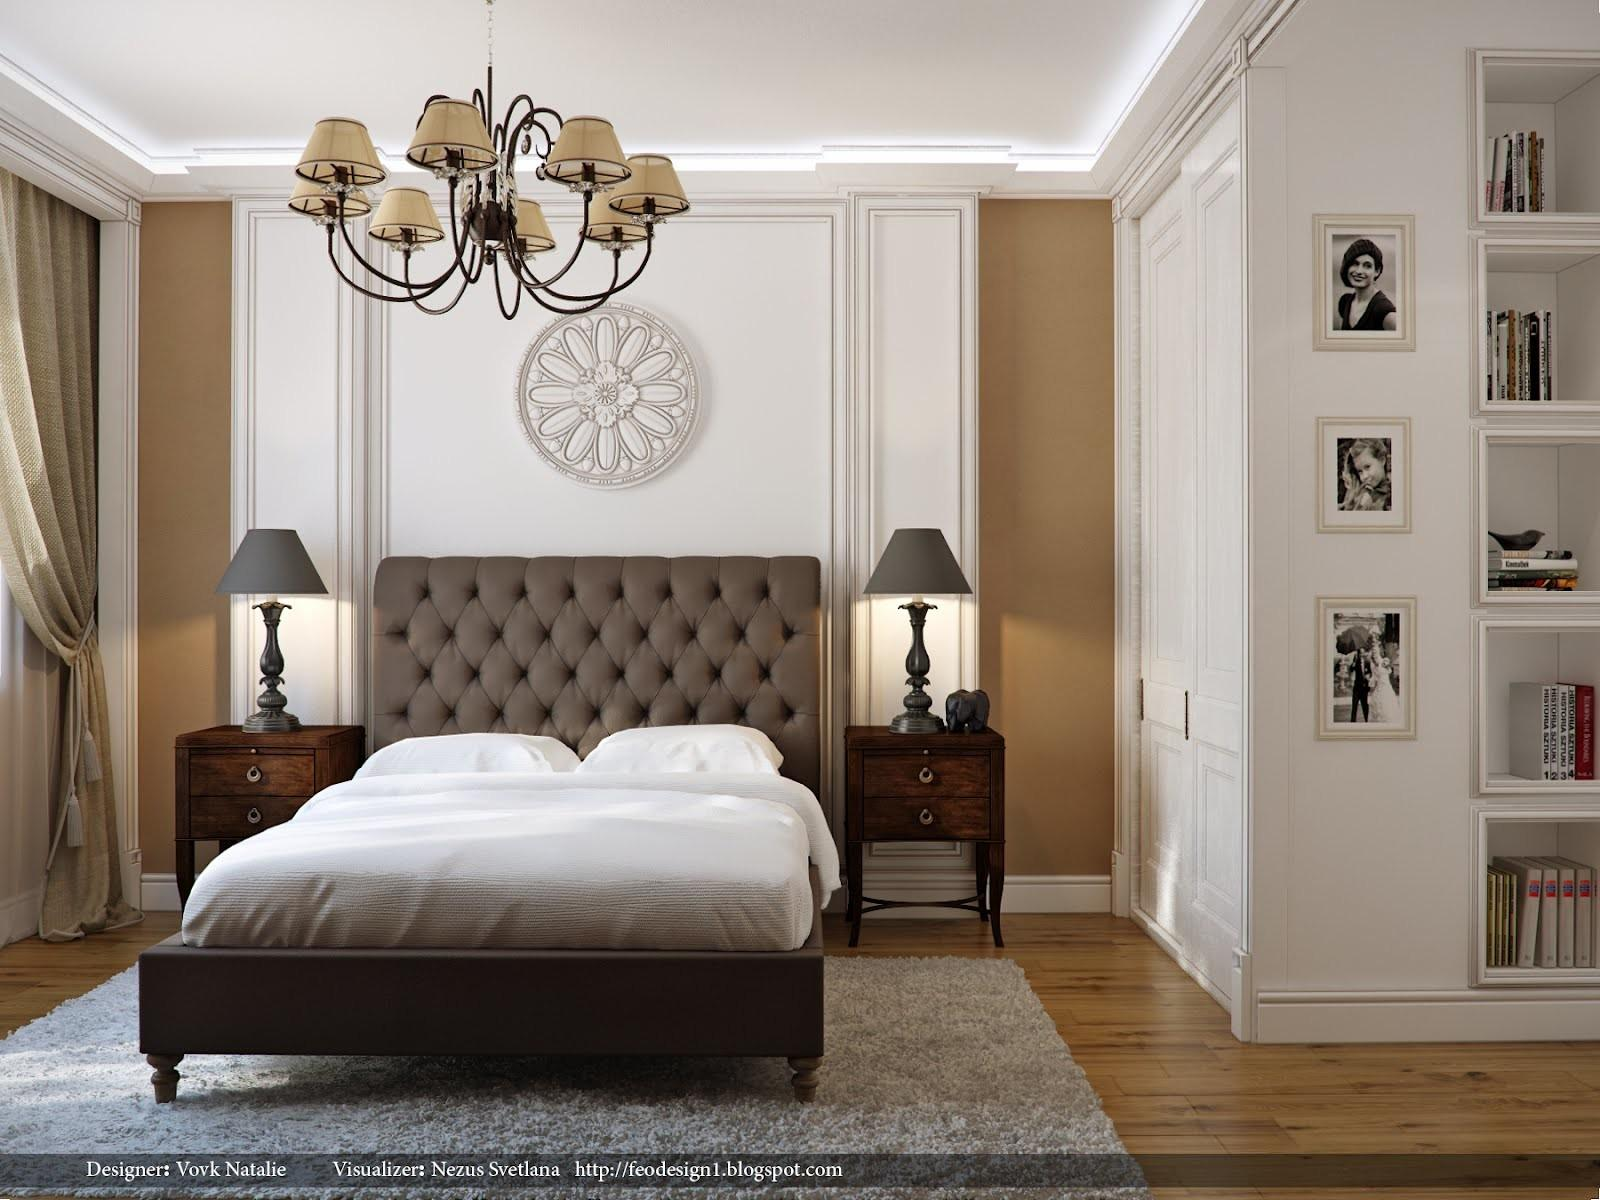 31 Dream Elegant Bedroom Design That You Have To See Stunning Photos Decoratorist